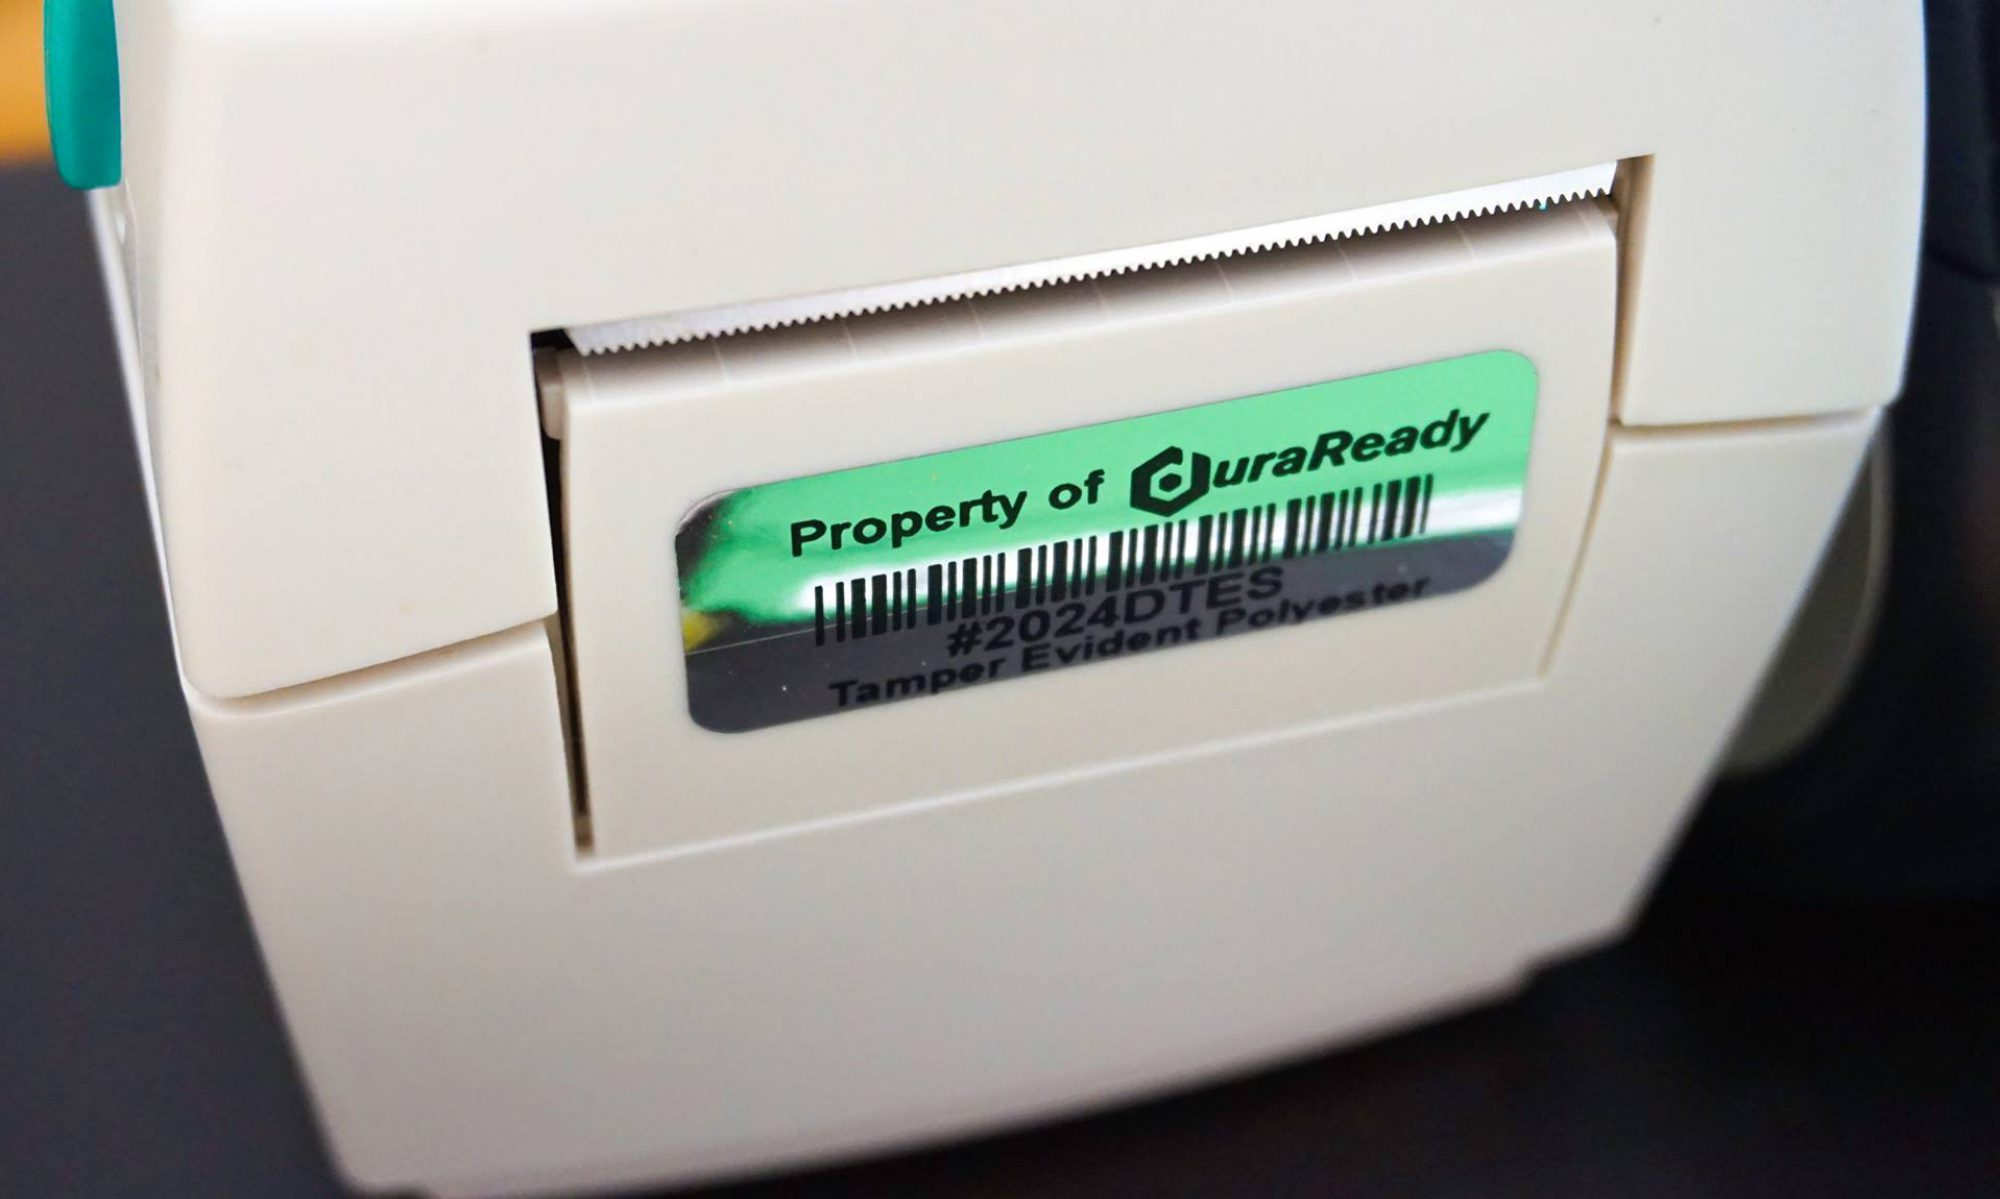 Durable Labels On-Demand for your Dymo Labelwriter and Zebra printers